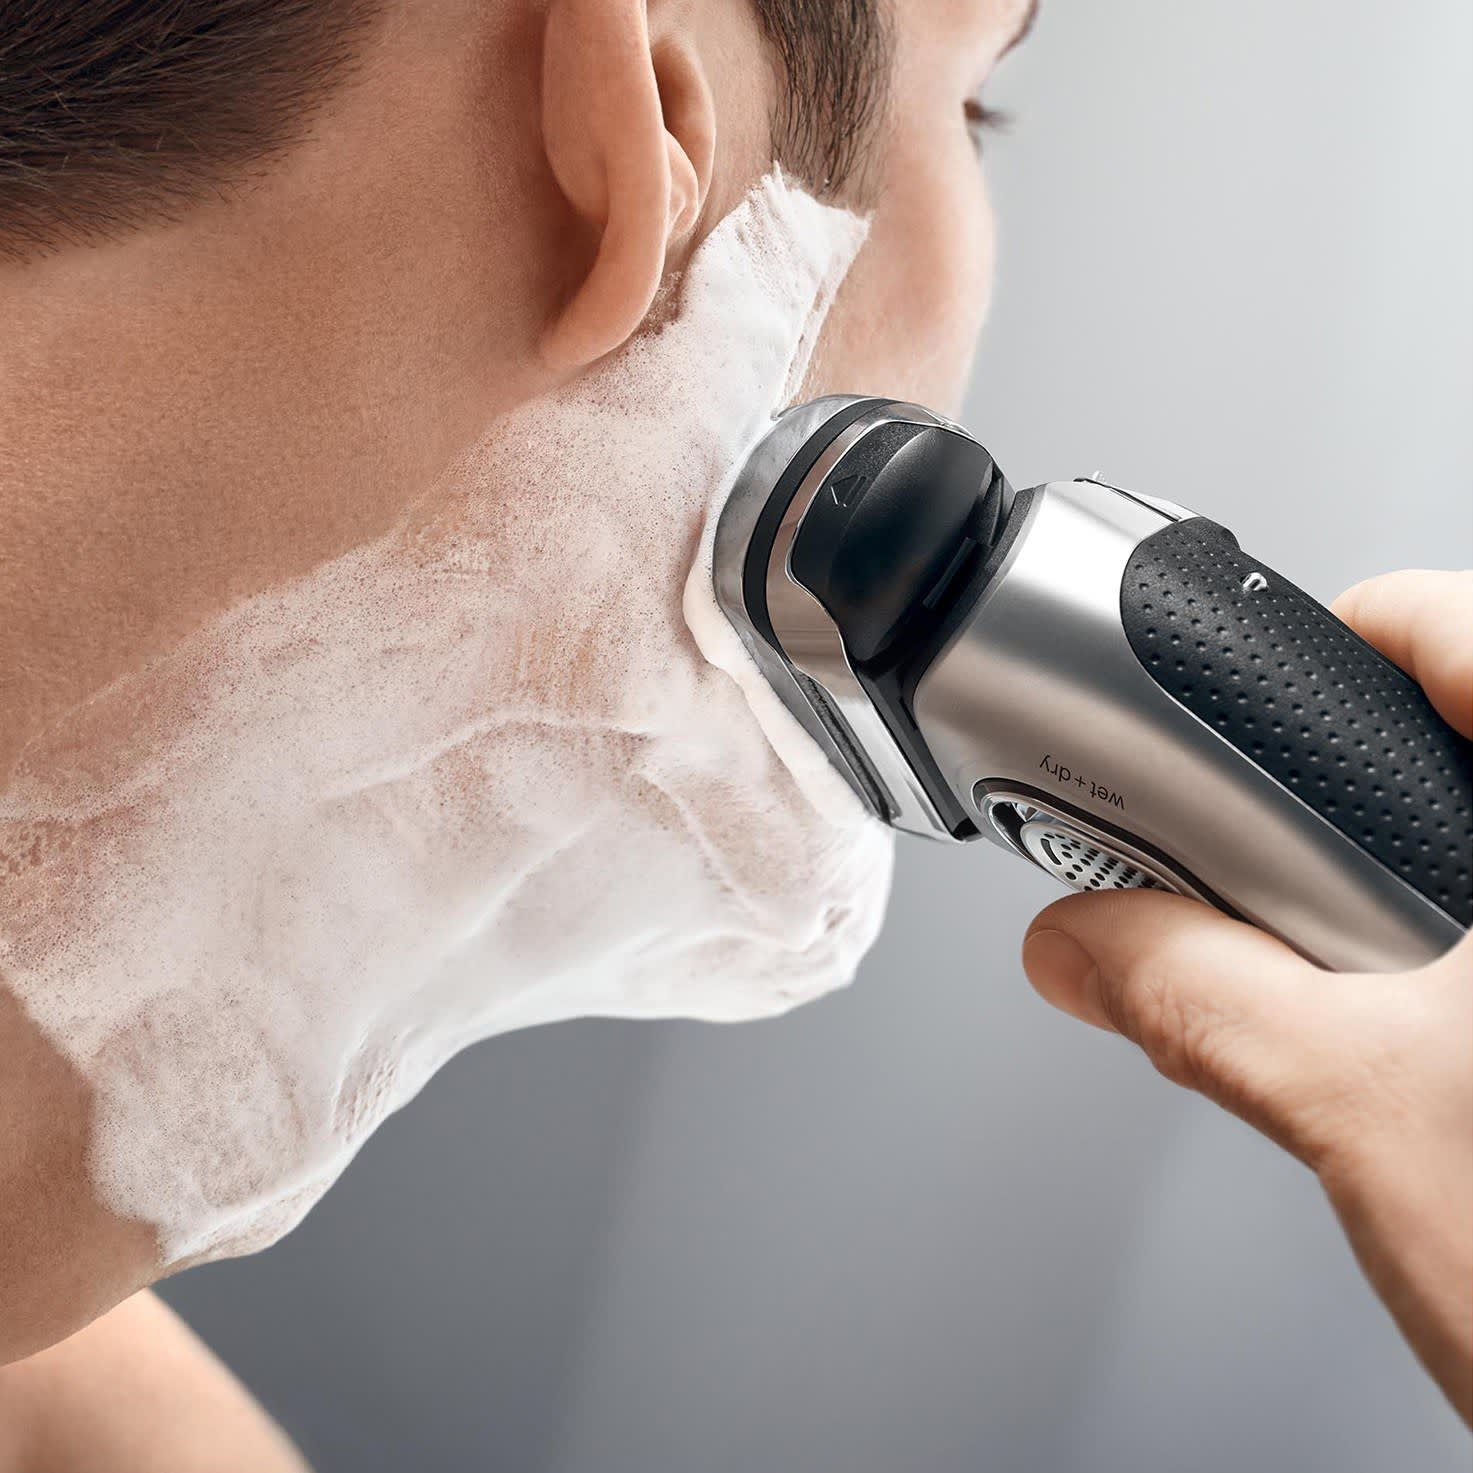 Braun Series 9 silver electric shaver in use